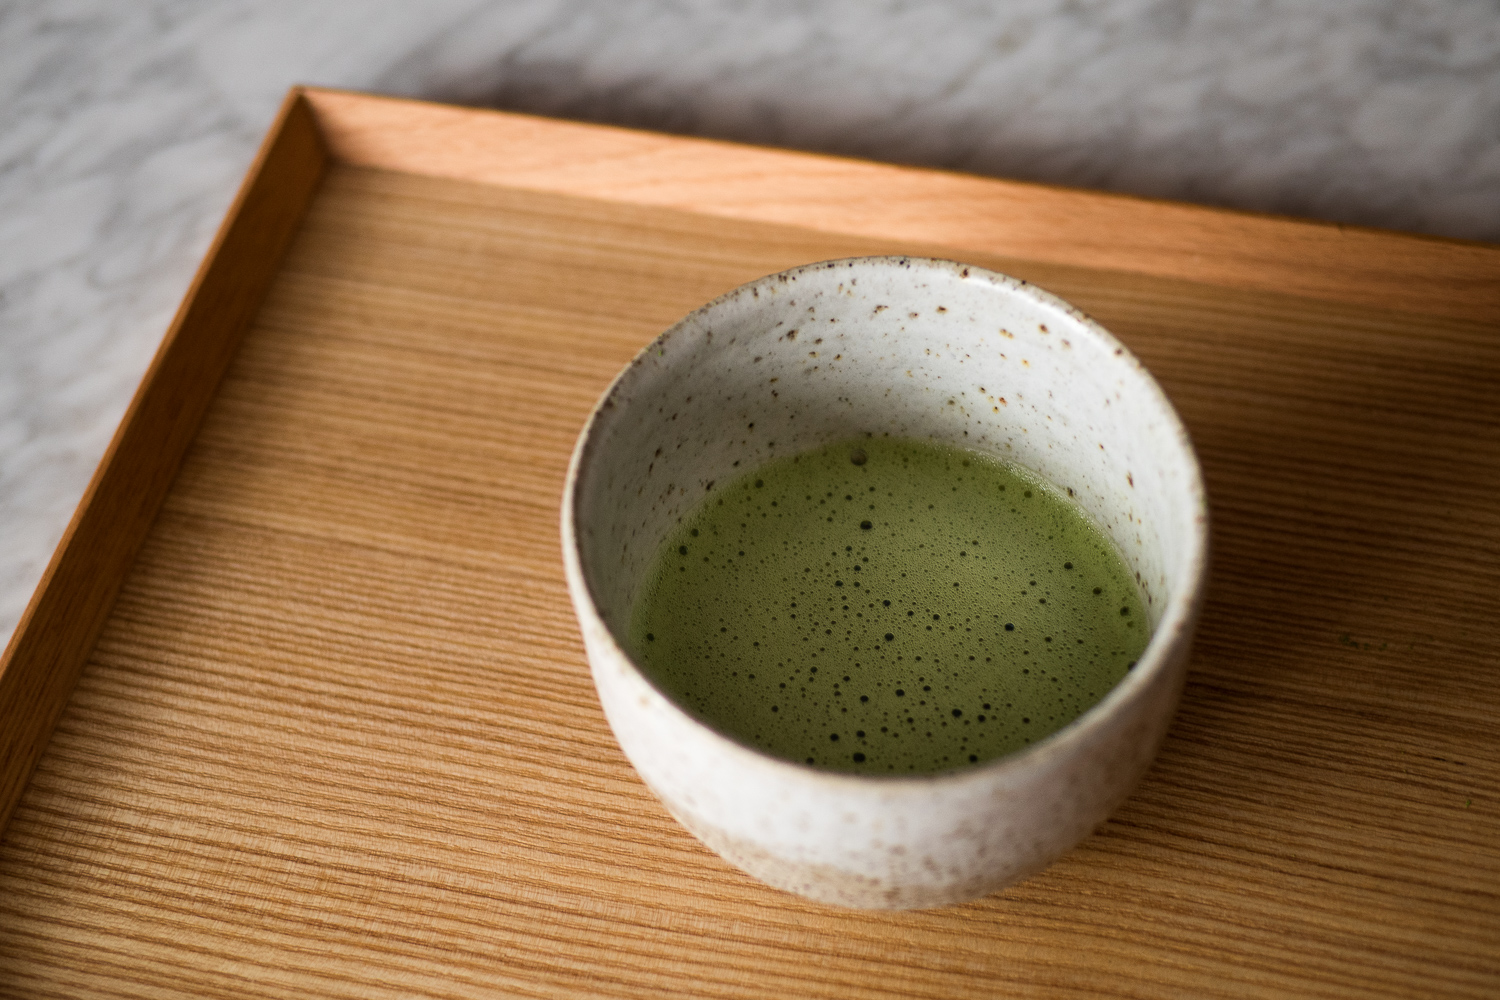 Matcha preparation guide - Read more →